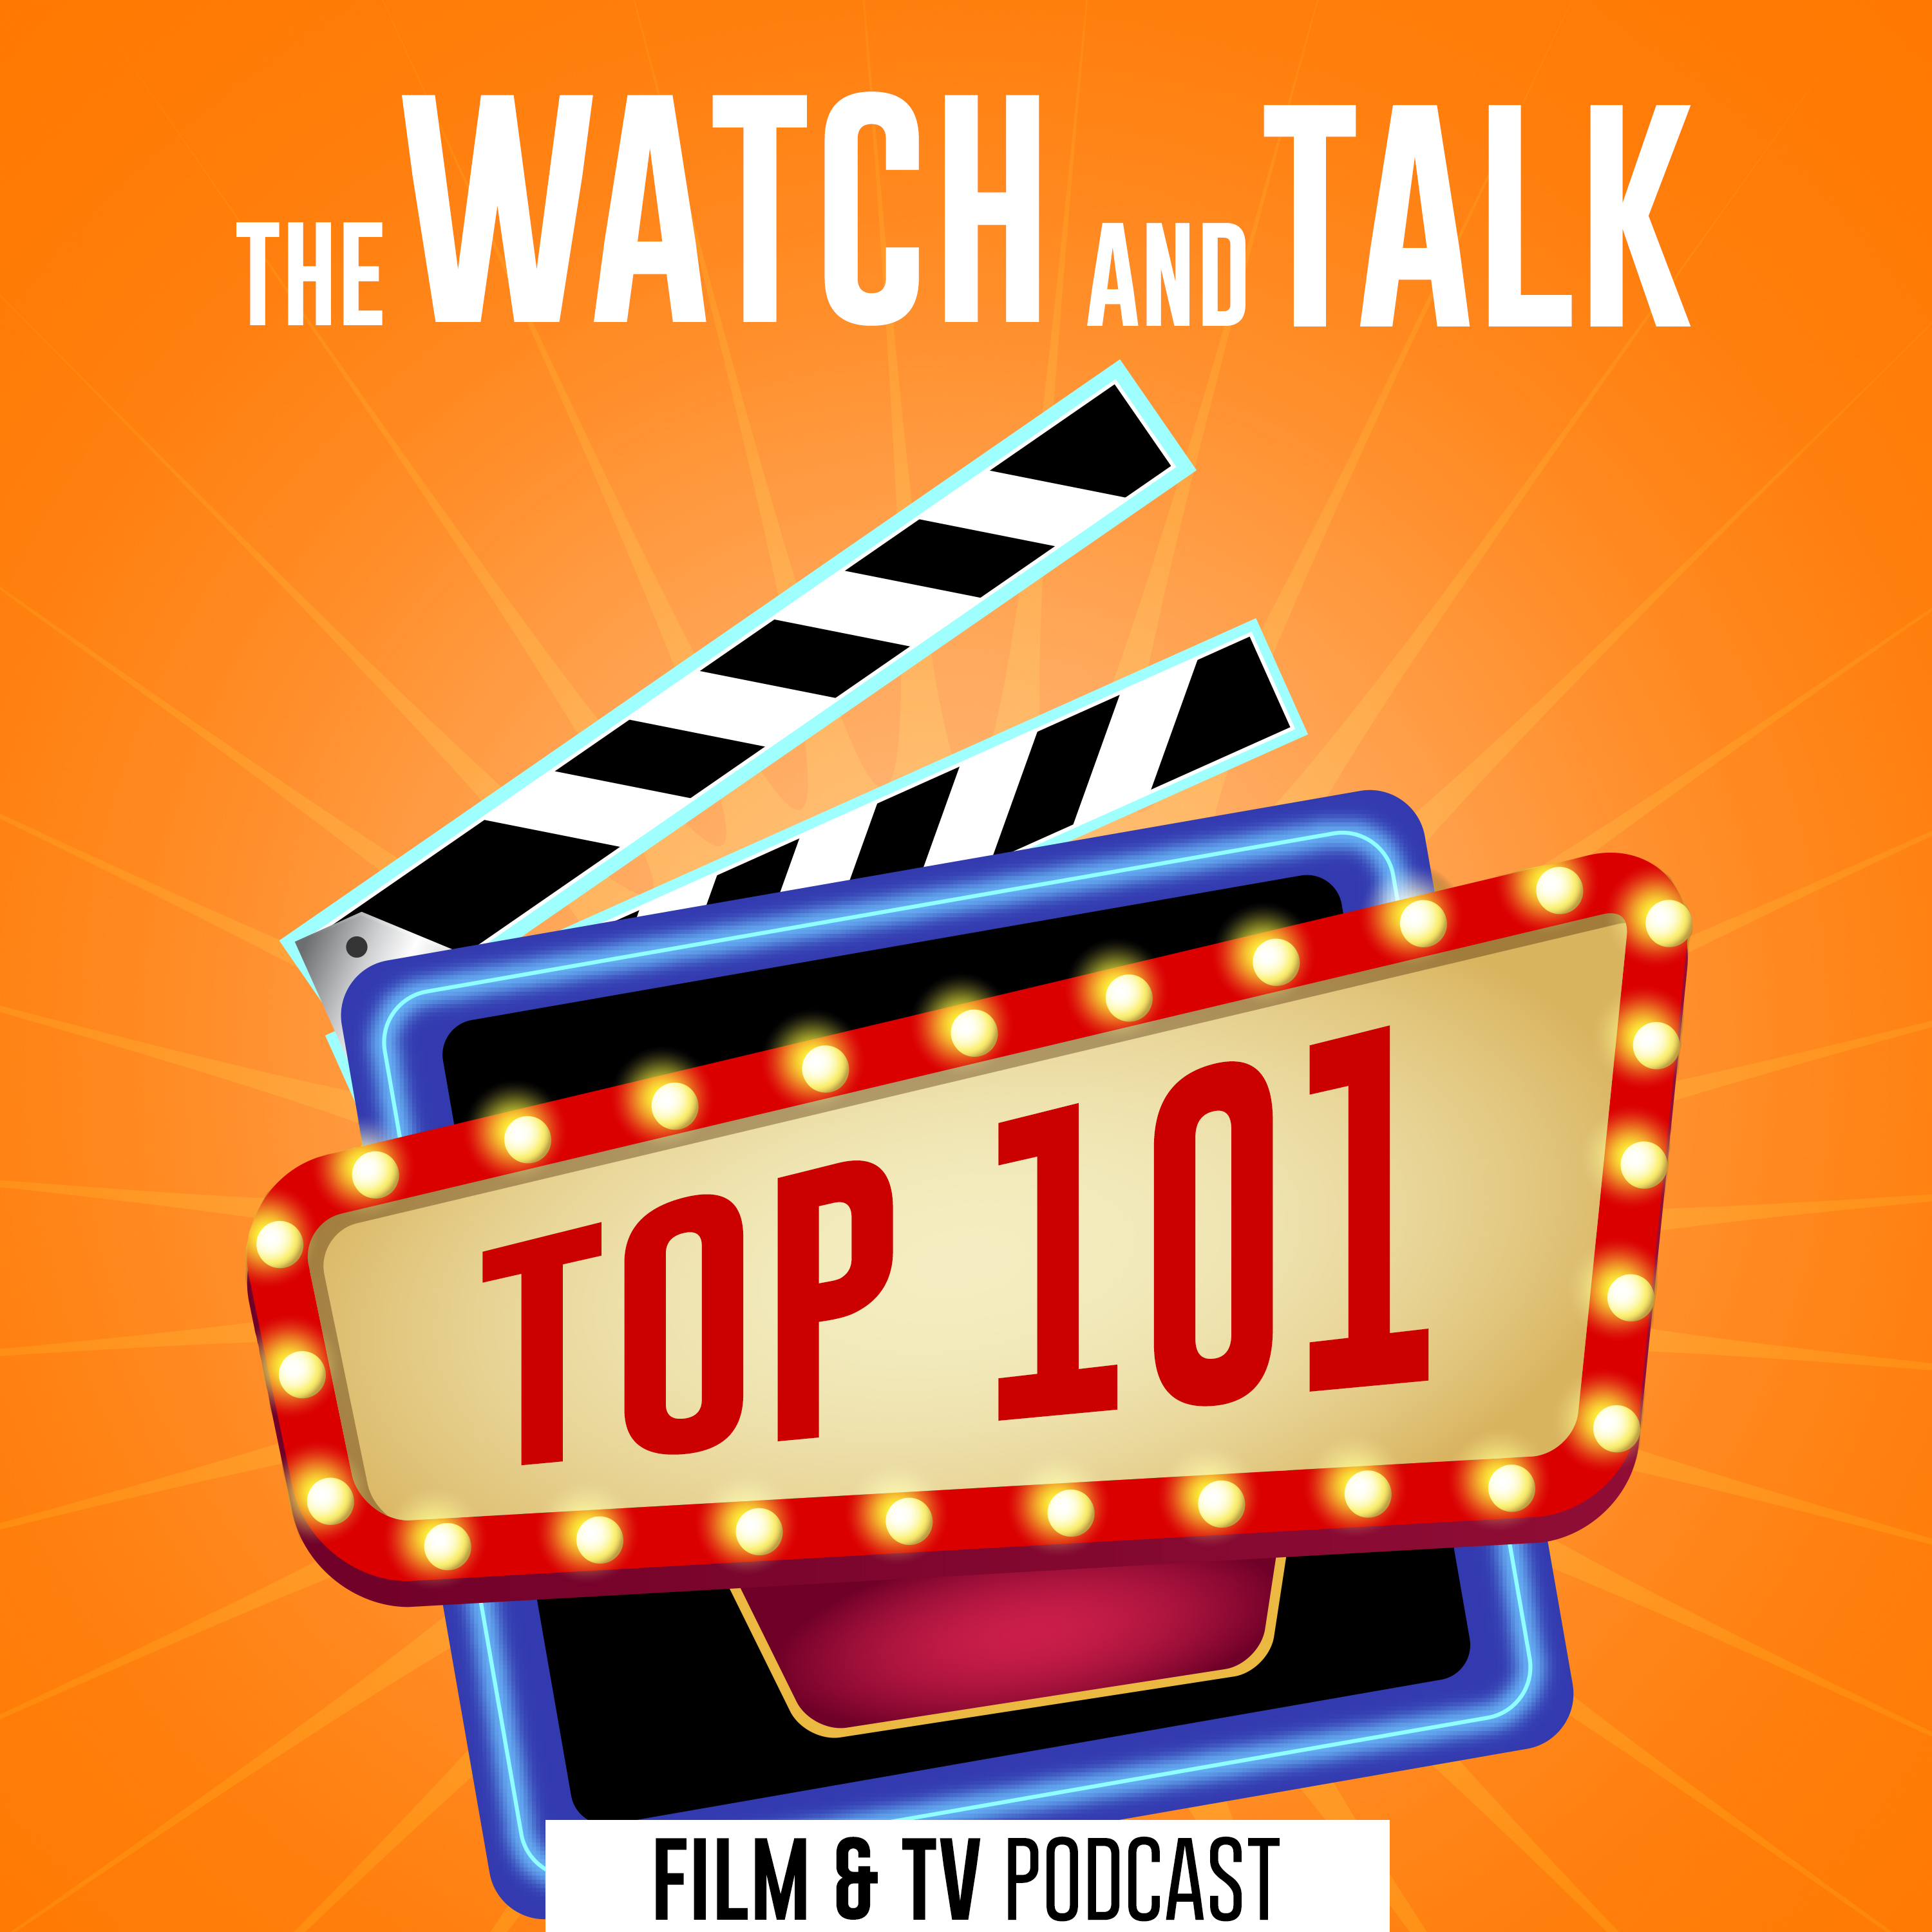 The Watch And Talk Top 101 | Film Podcast show image